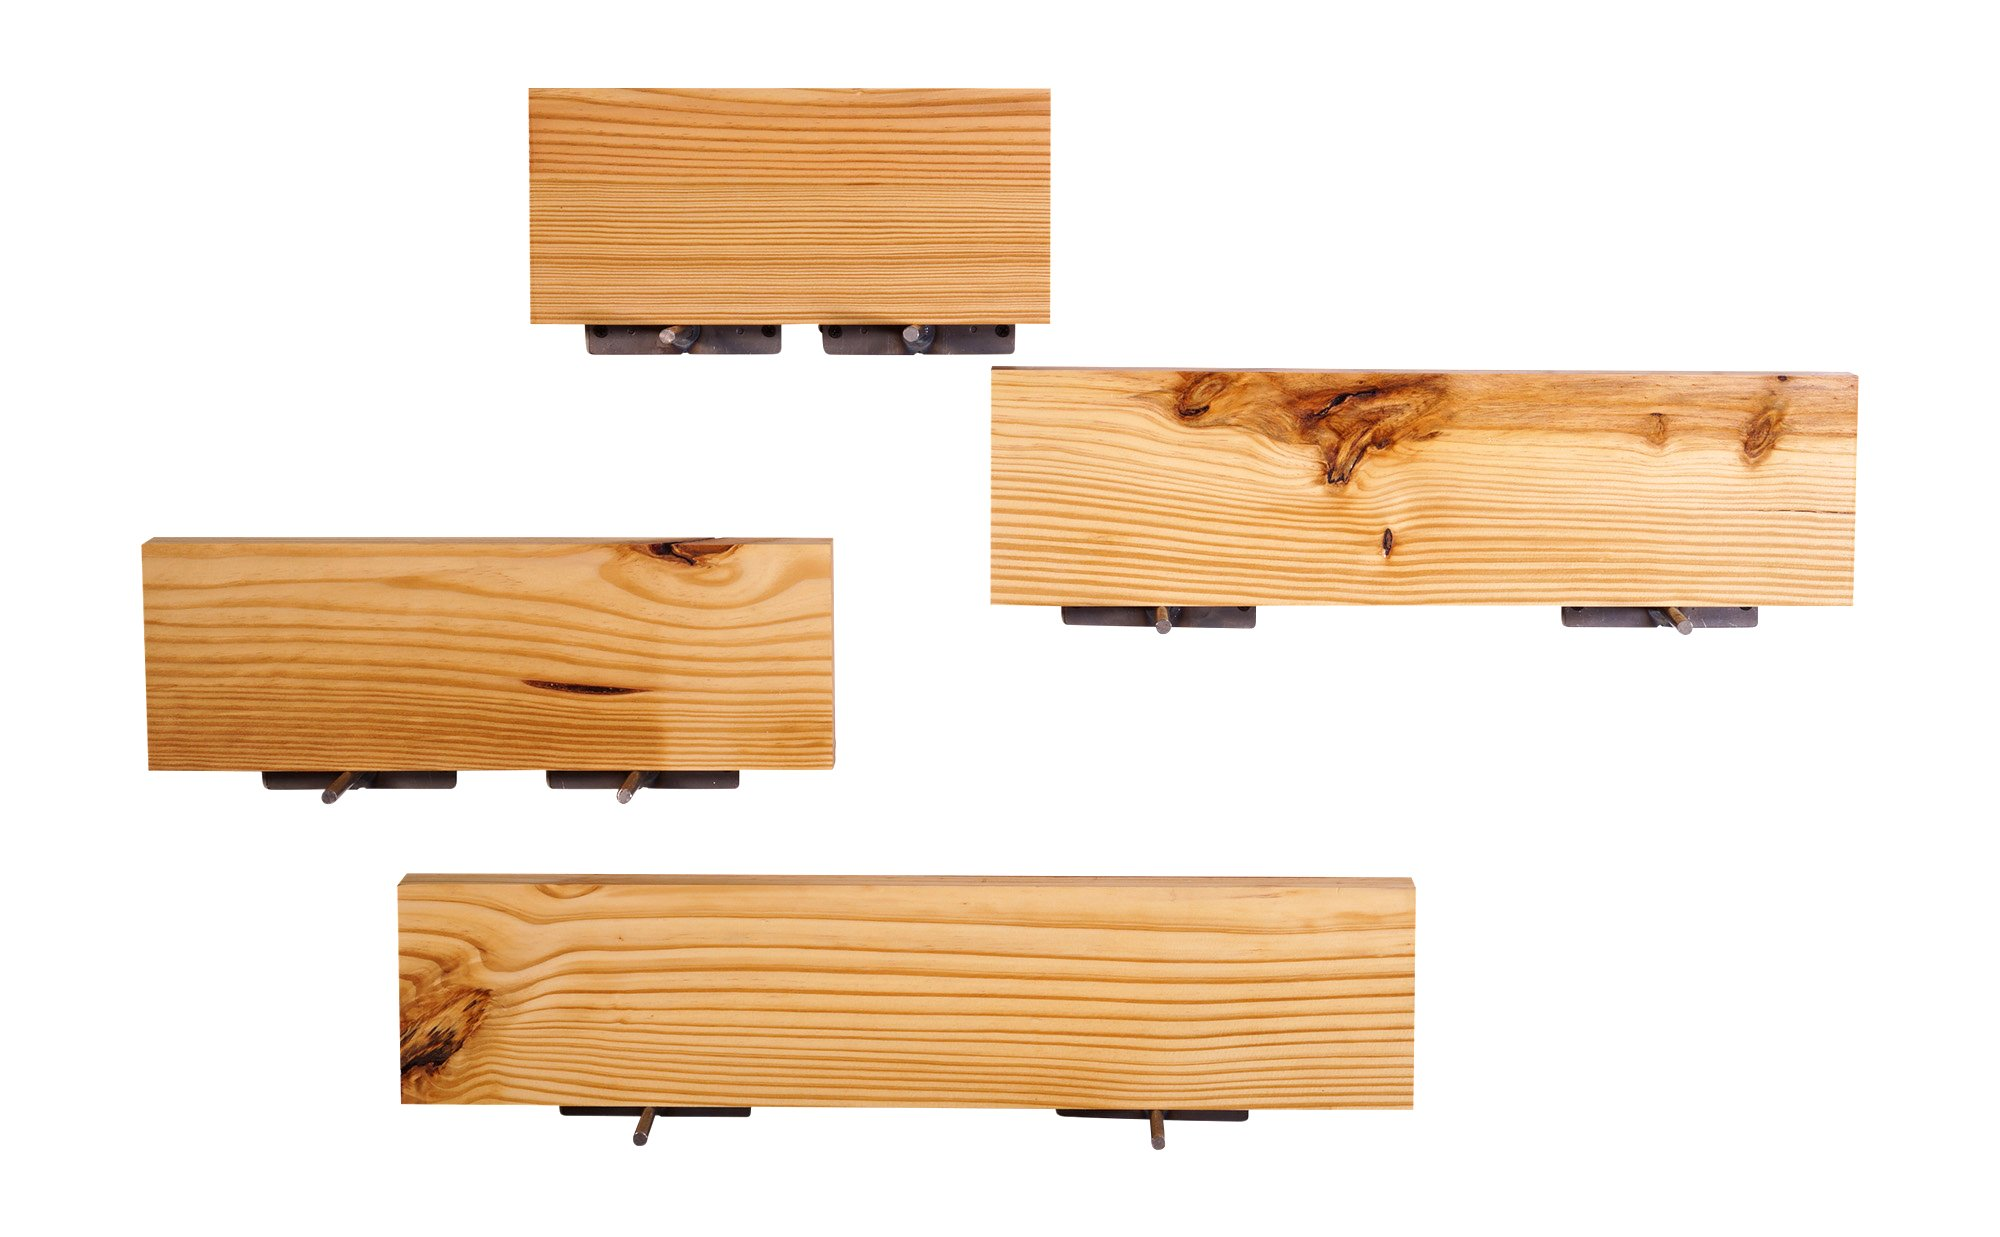 """DAKODA LOVE 5.25"""" Deep Clean Edge Floating Shelves, USA Handmade, Clear Coat Finish, 100% Countersunk Hidden Floating Shelf Brackets, Beautiful Grain Pine Wood Wall Decor (Set of 4) (Natural) - True floating shelves with squared edges. Sits flush against wall with 100% countersunk hidden brackets (includes all mounting hardware) Handcrafted with furniture grade dry kilned pine wood Hand wiped stain and clear coat finish - wall-shelves, living-room-furniture, living-room - 71X3DU2IG1L -"""